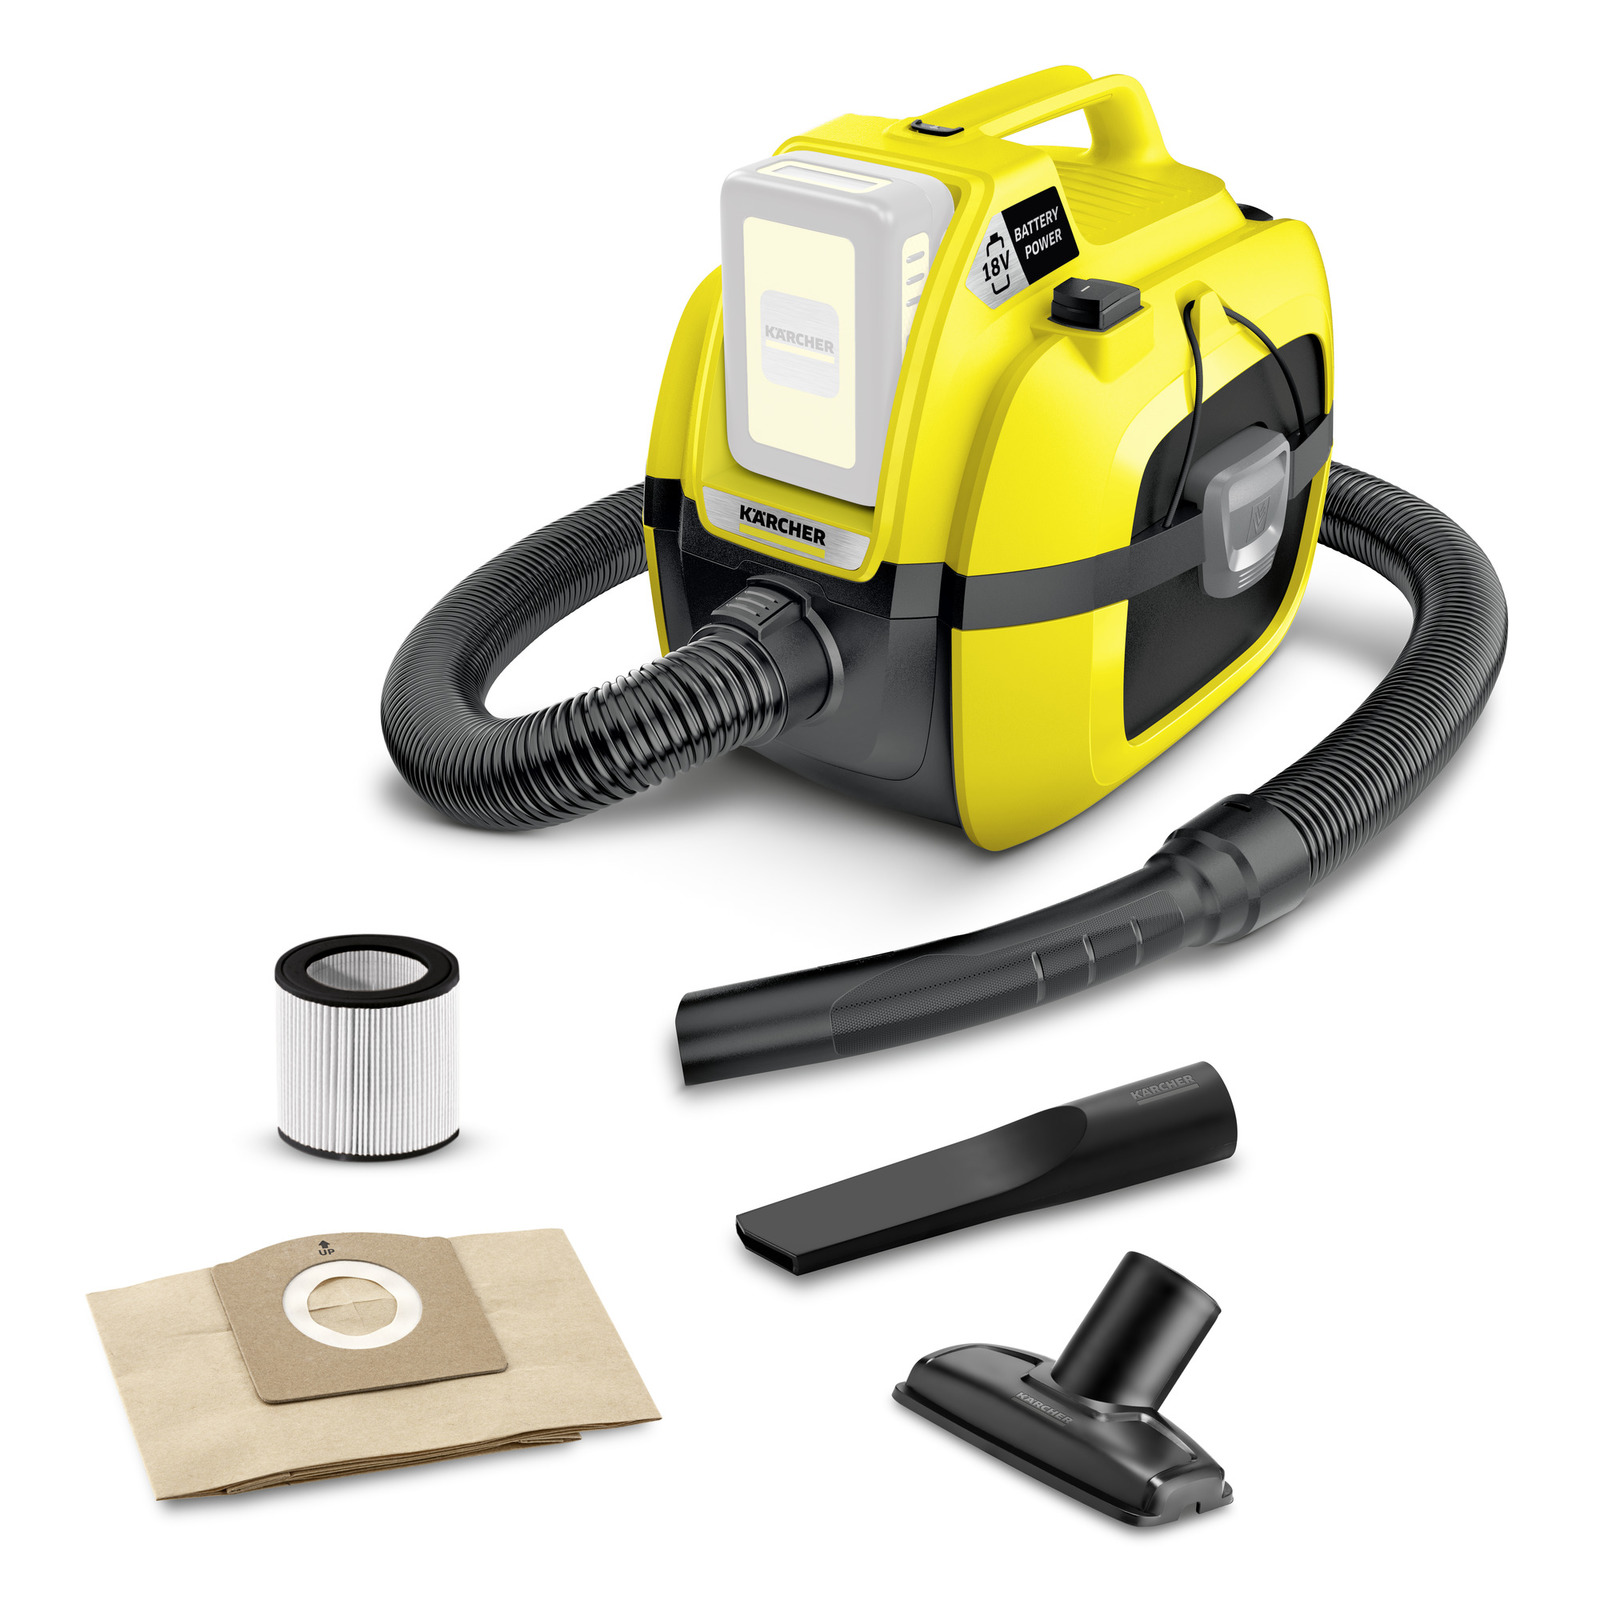 KARCHER 1.198-300.0 - WD1 Compact Battery Multi-Purpose Vacuum Cleaner